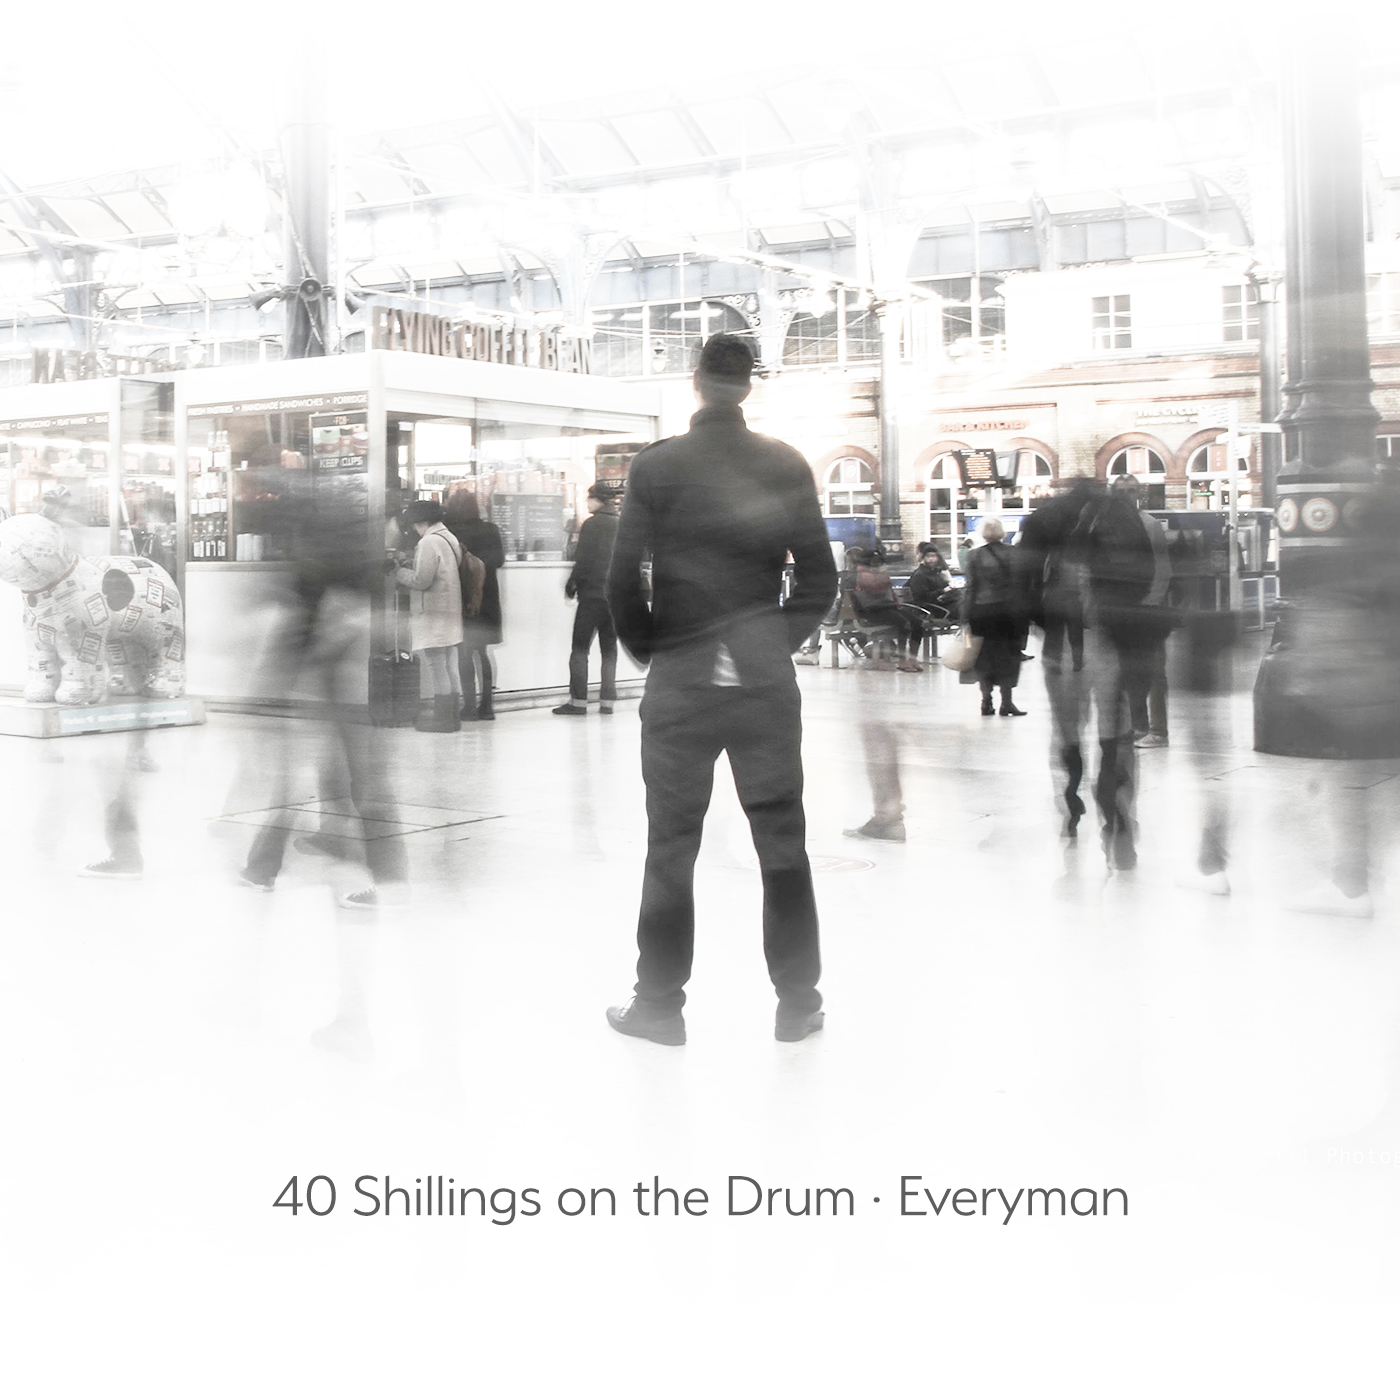 Everyman - 40 Shillings on the Drum